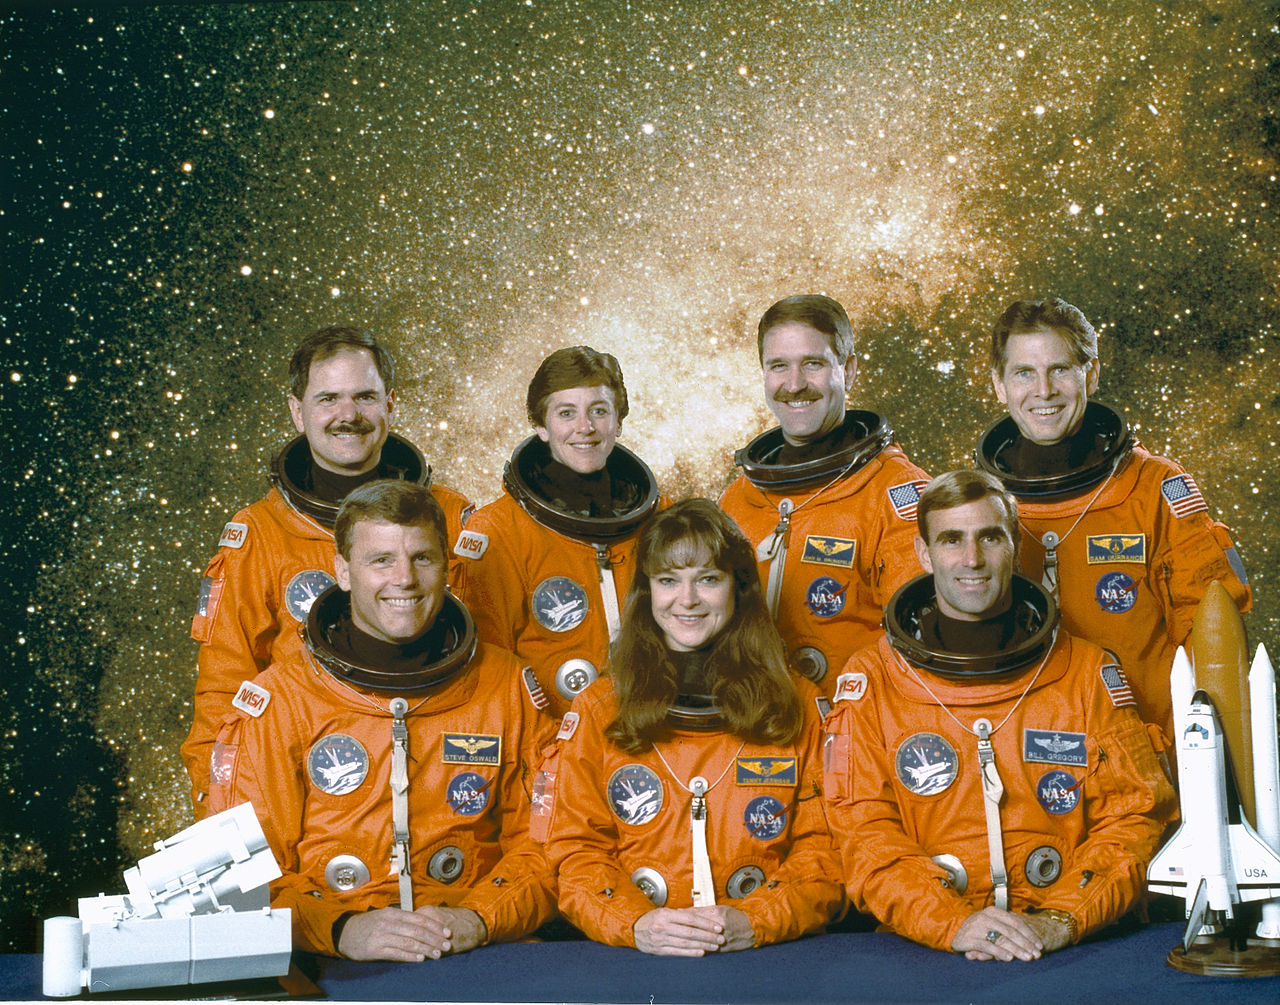 1995: 13 people in space